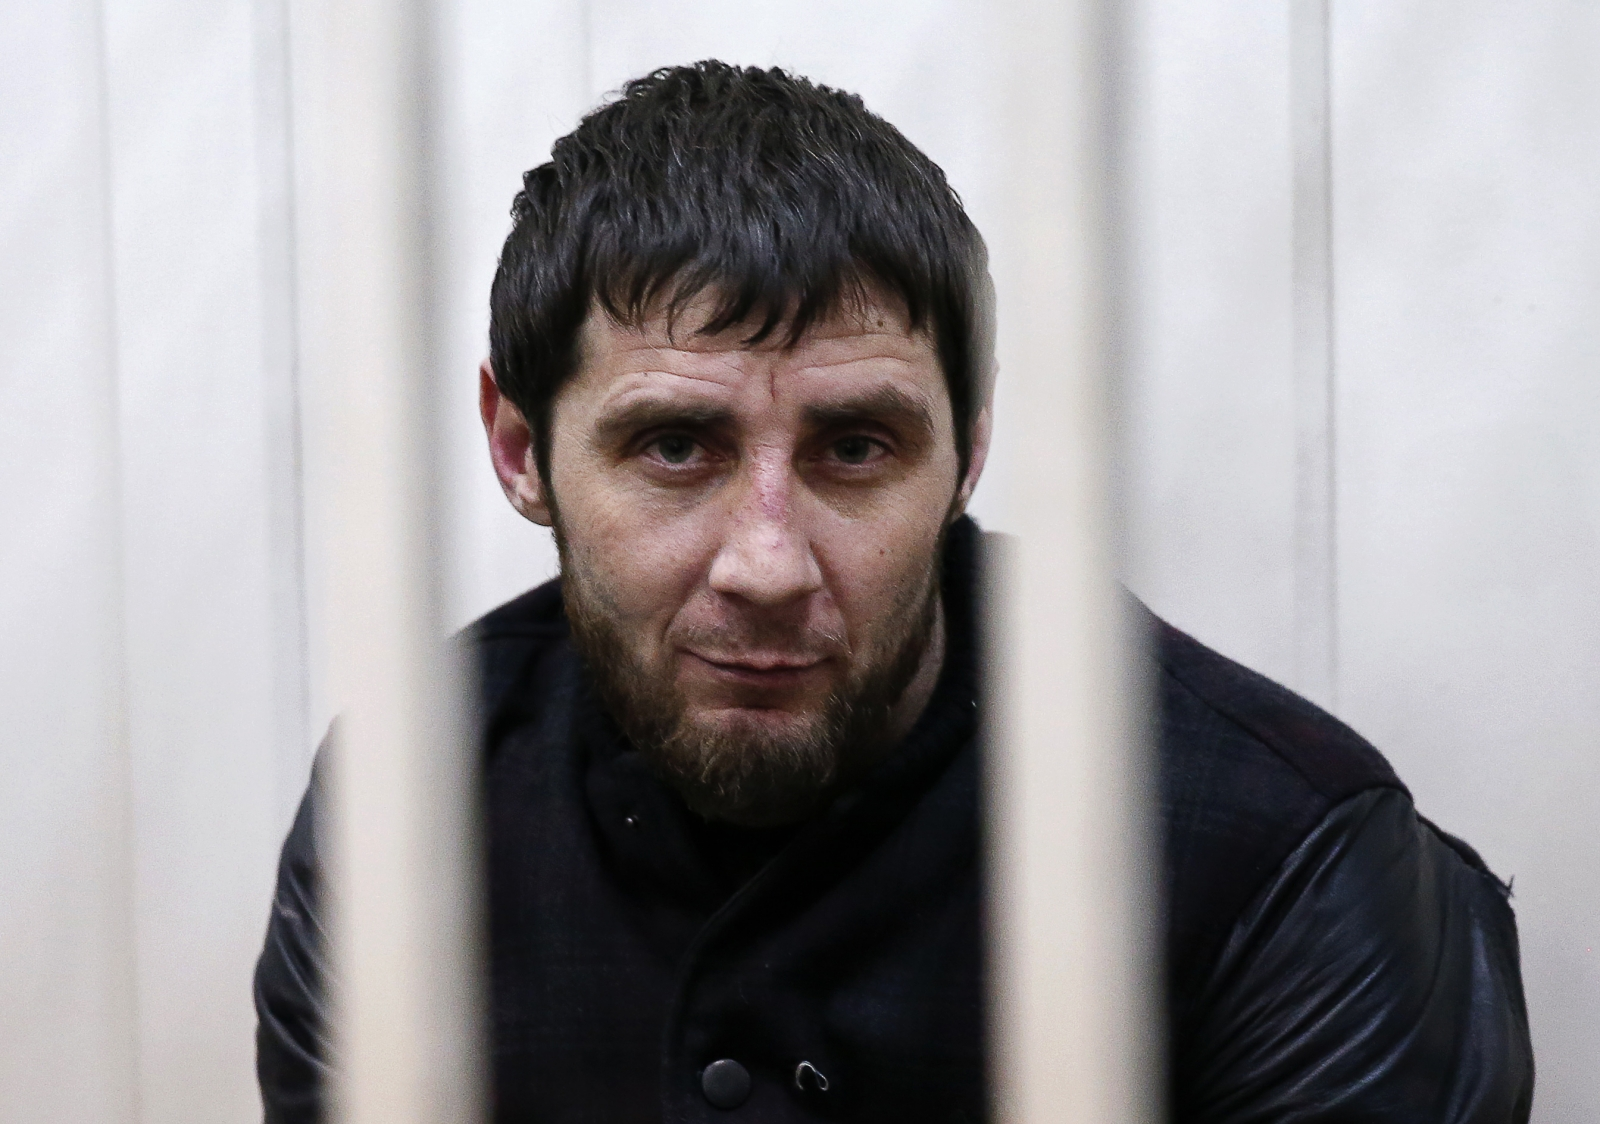 Zaur Dadayev, charged with involvement in themurderofBorisNemtsov